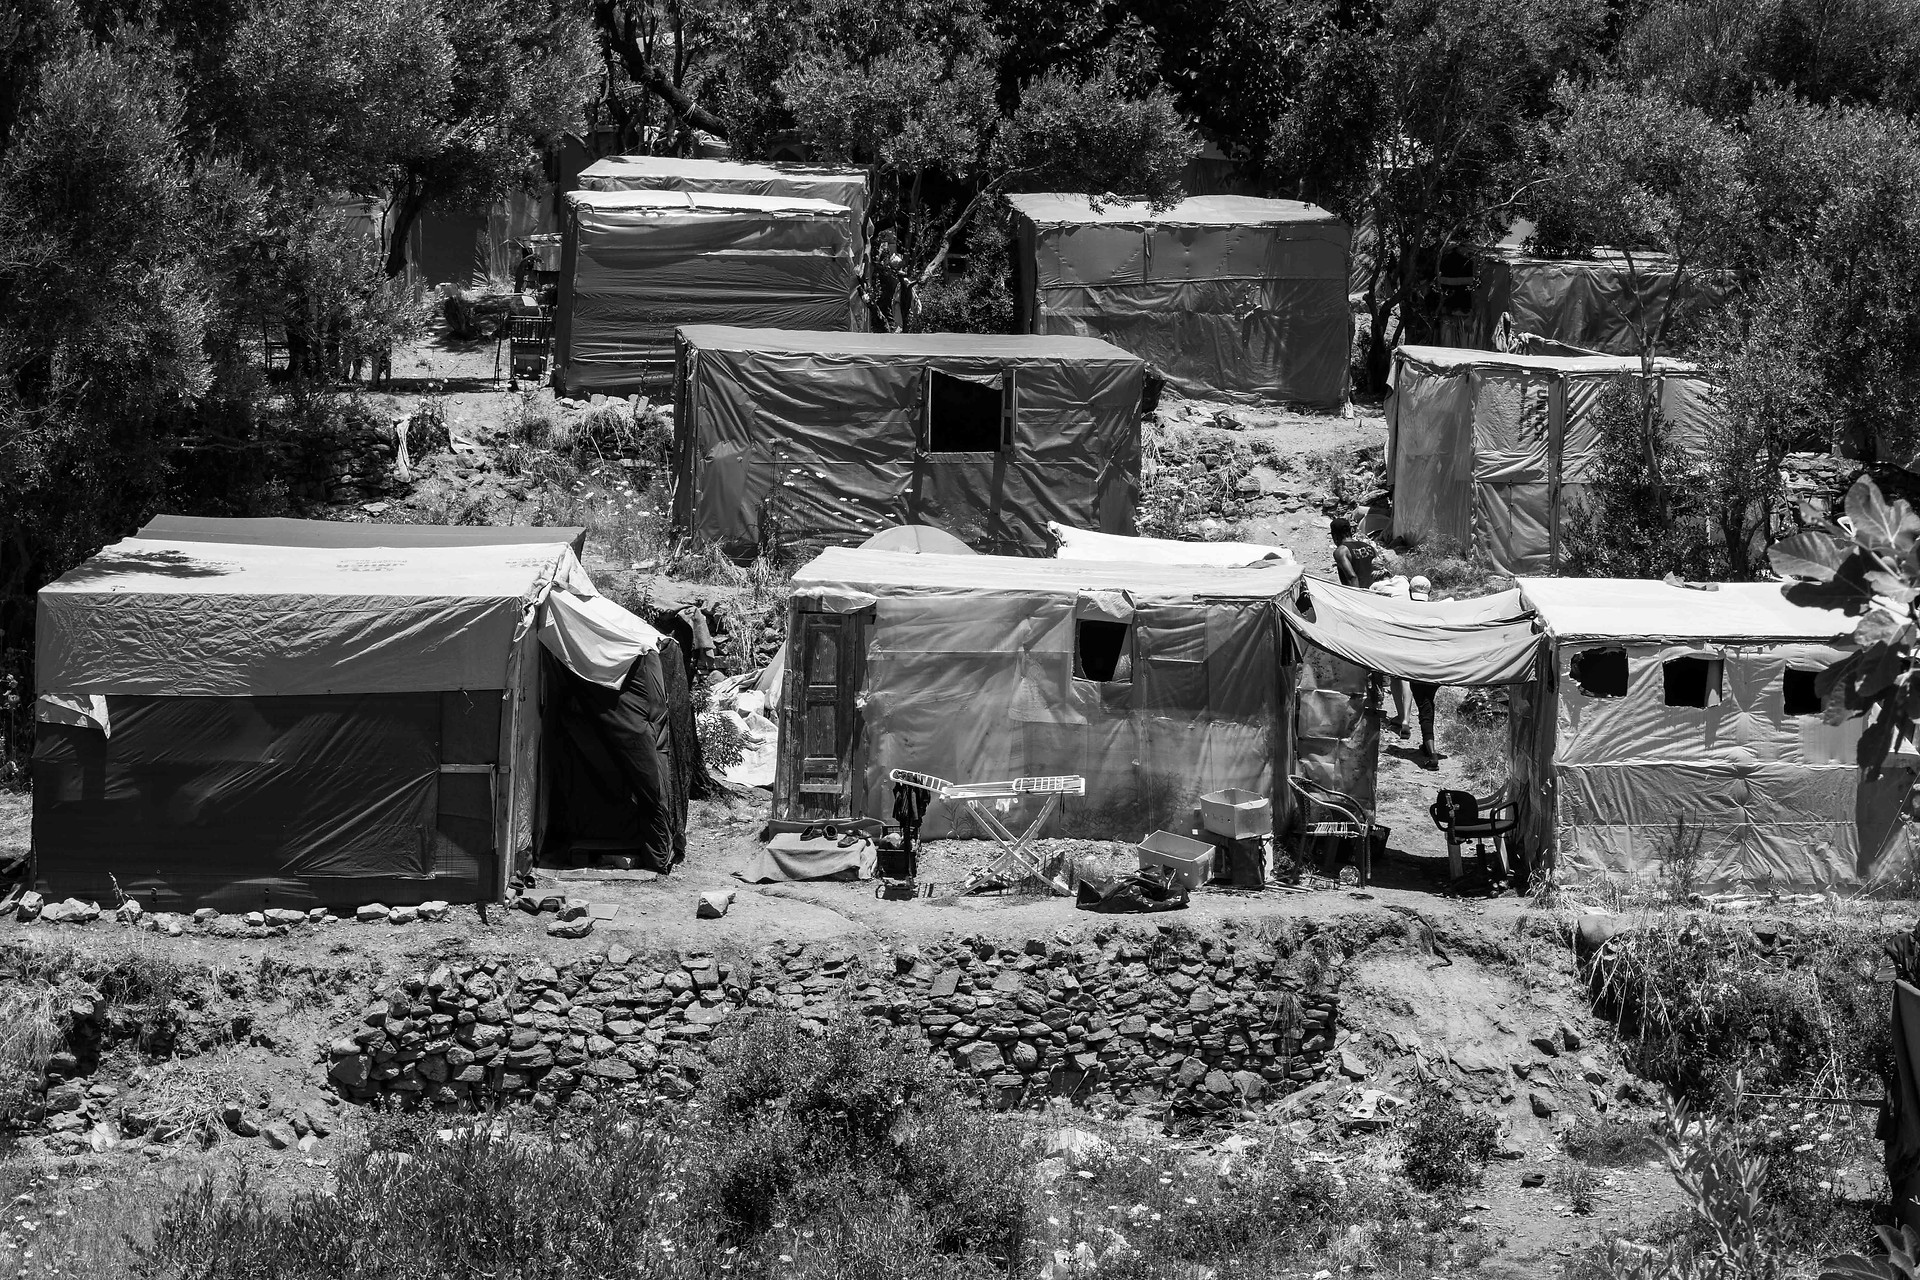 Tents in the camp